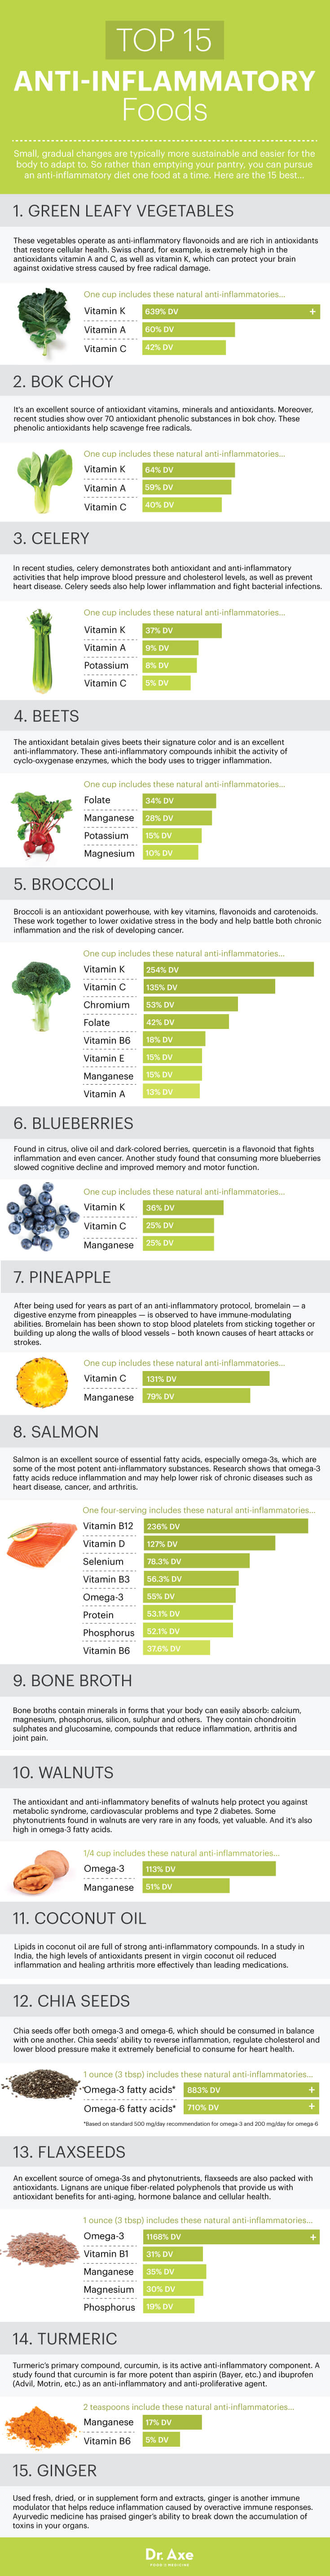 Heal Your Body with These Amazing 15 Anti-Inflammatory Foods - Infographic